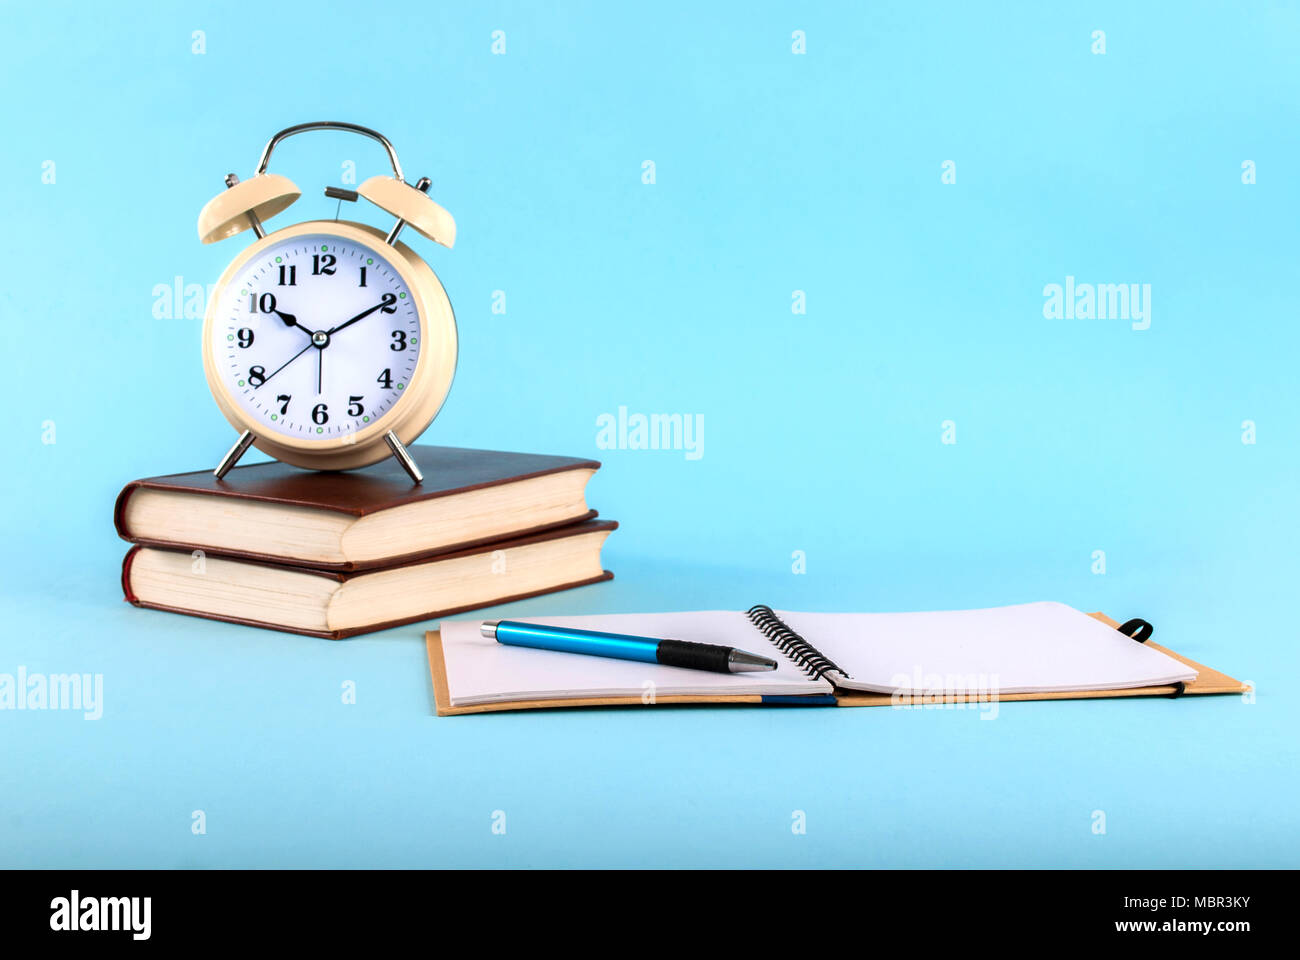 Old clock on books and open notebook isolated by on a blue background Stock Photo